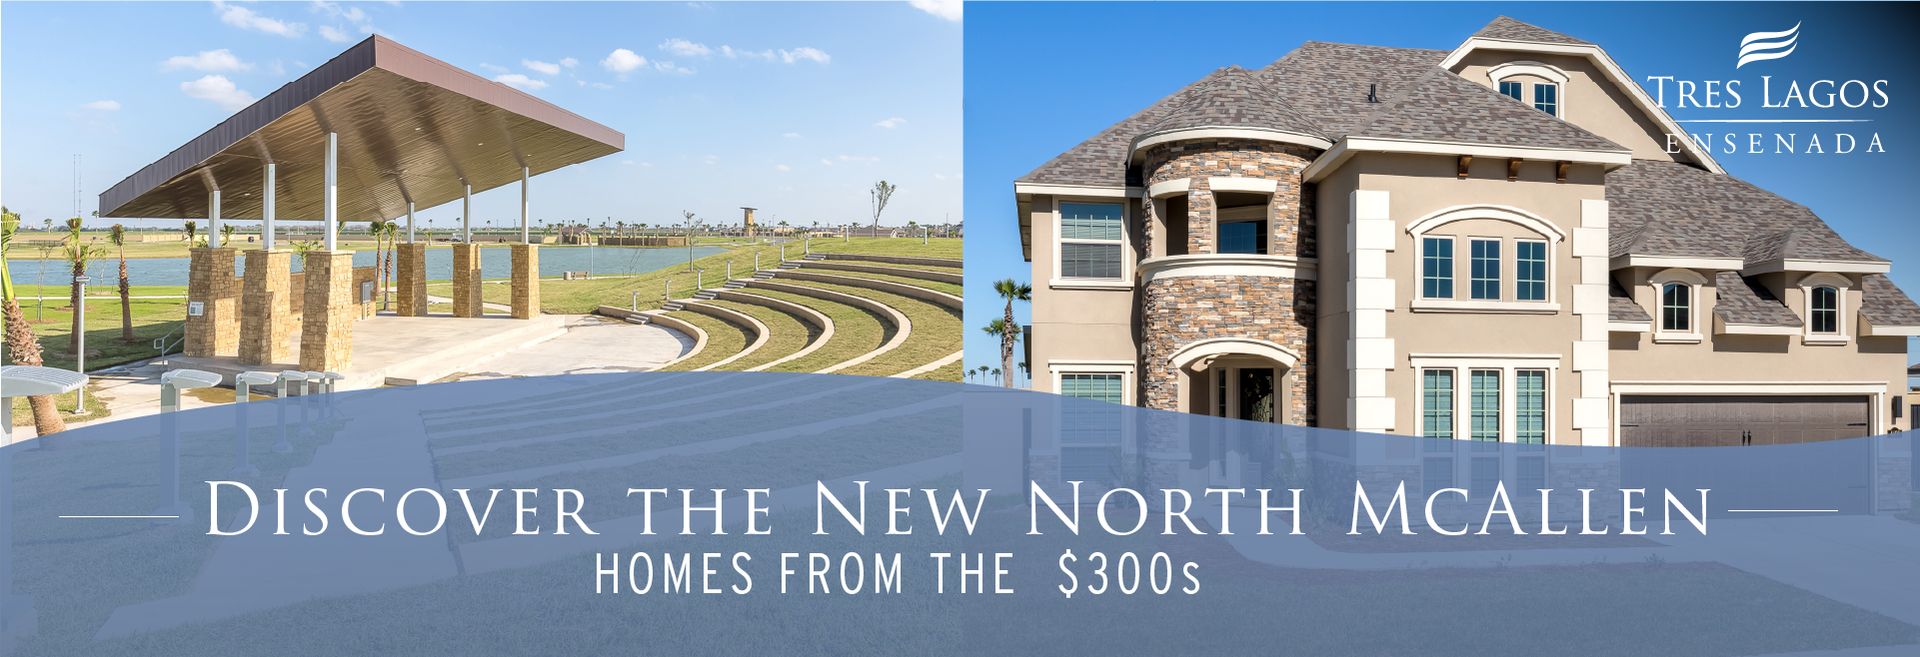 Ensenada at Tres Lagos New Homes in McAllen , TX